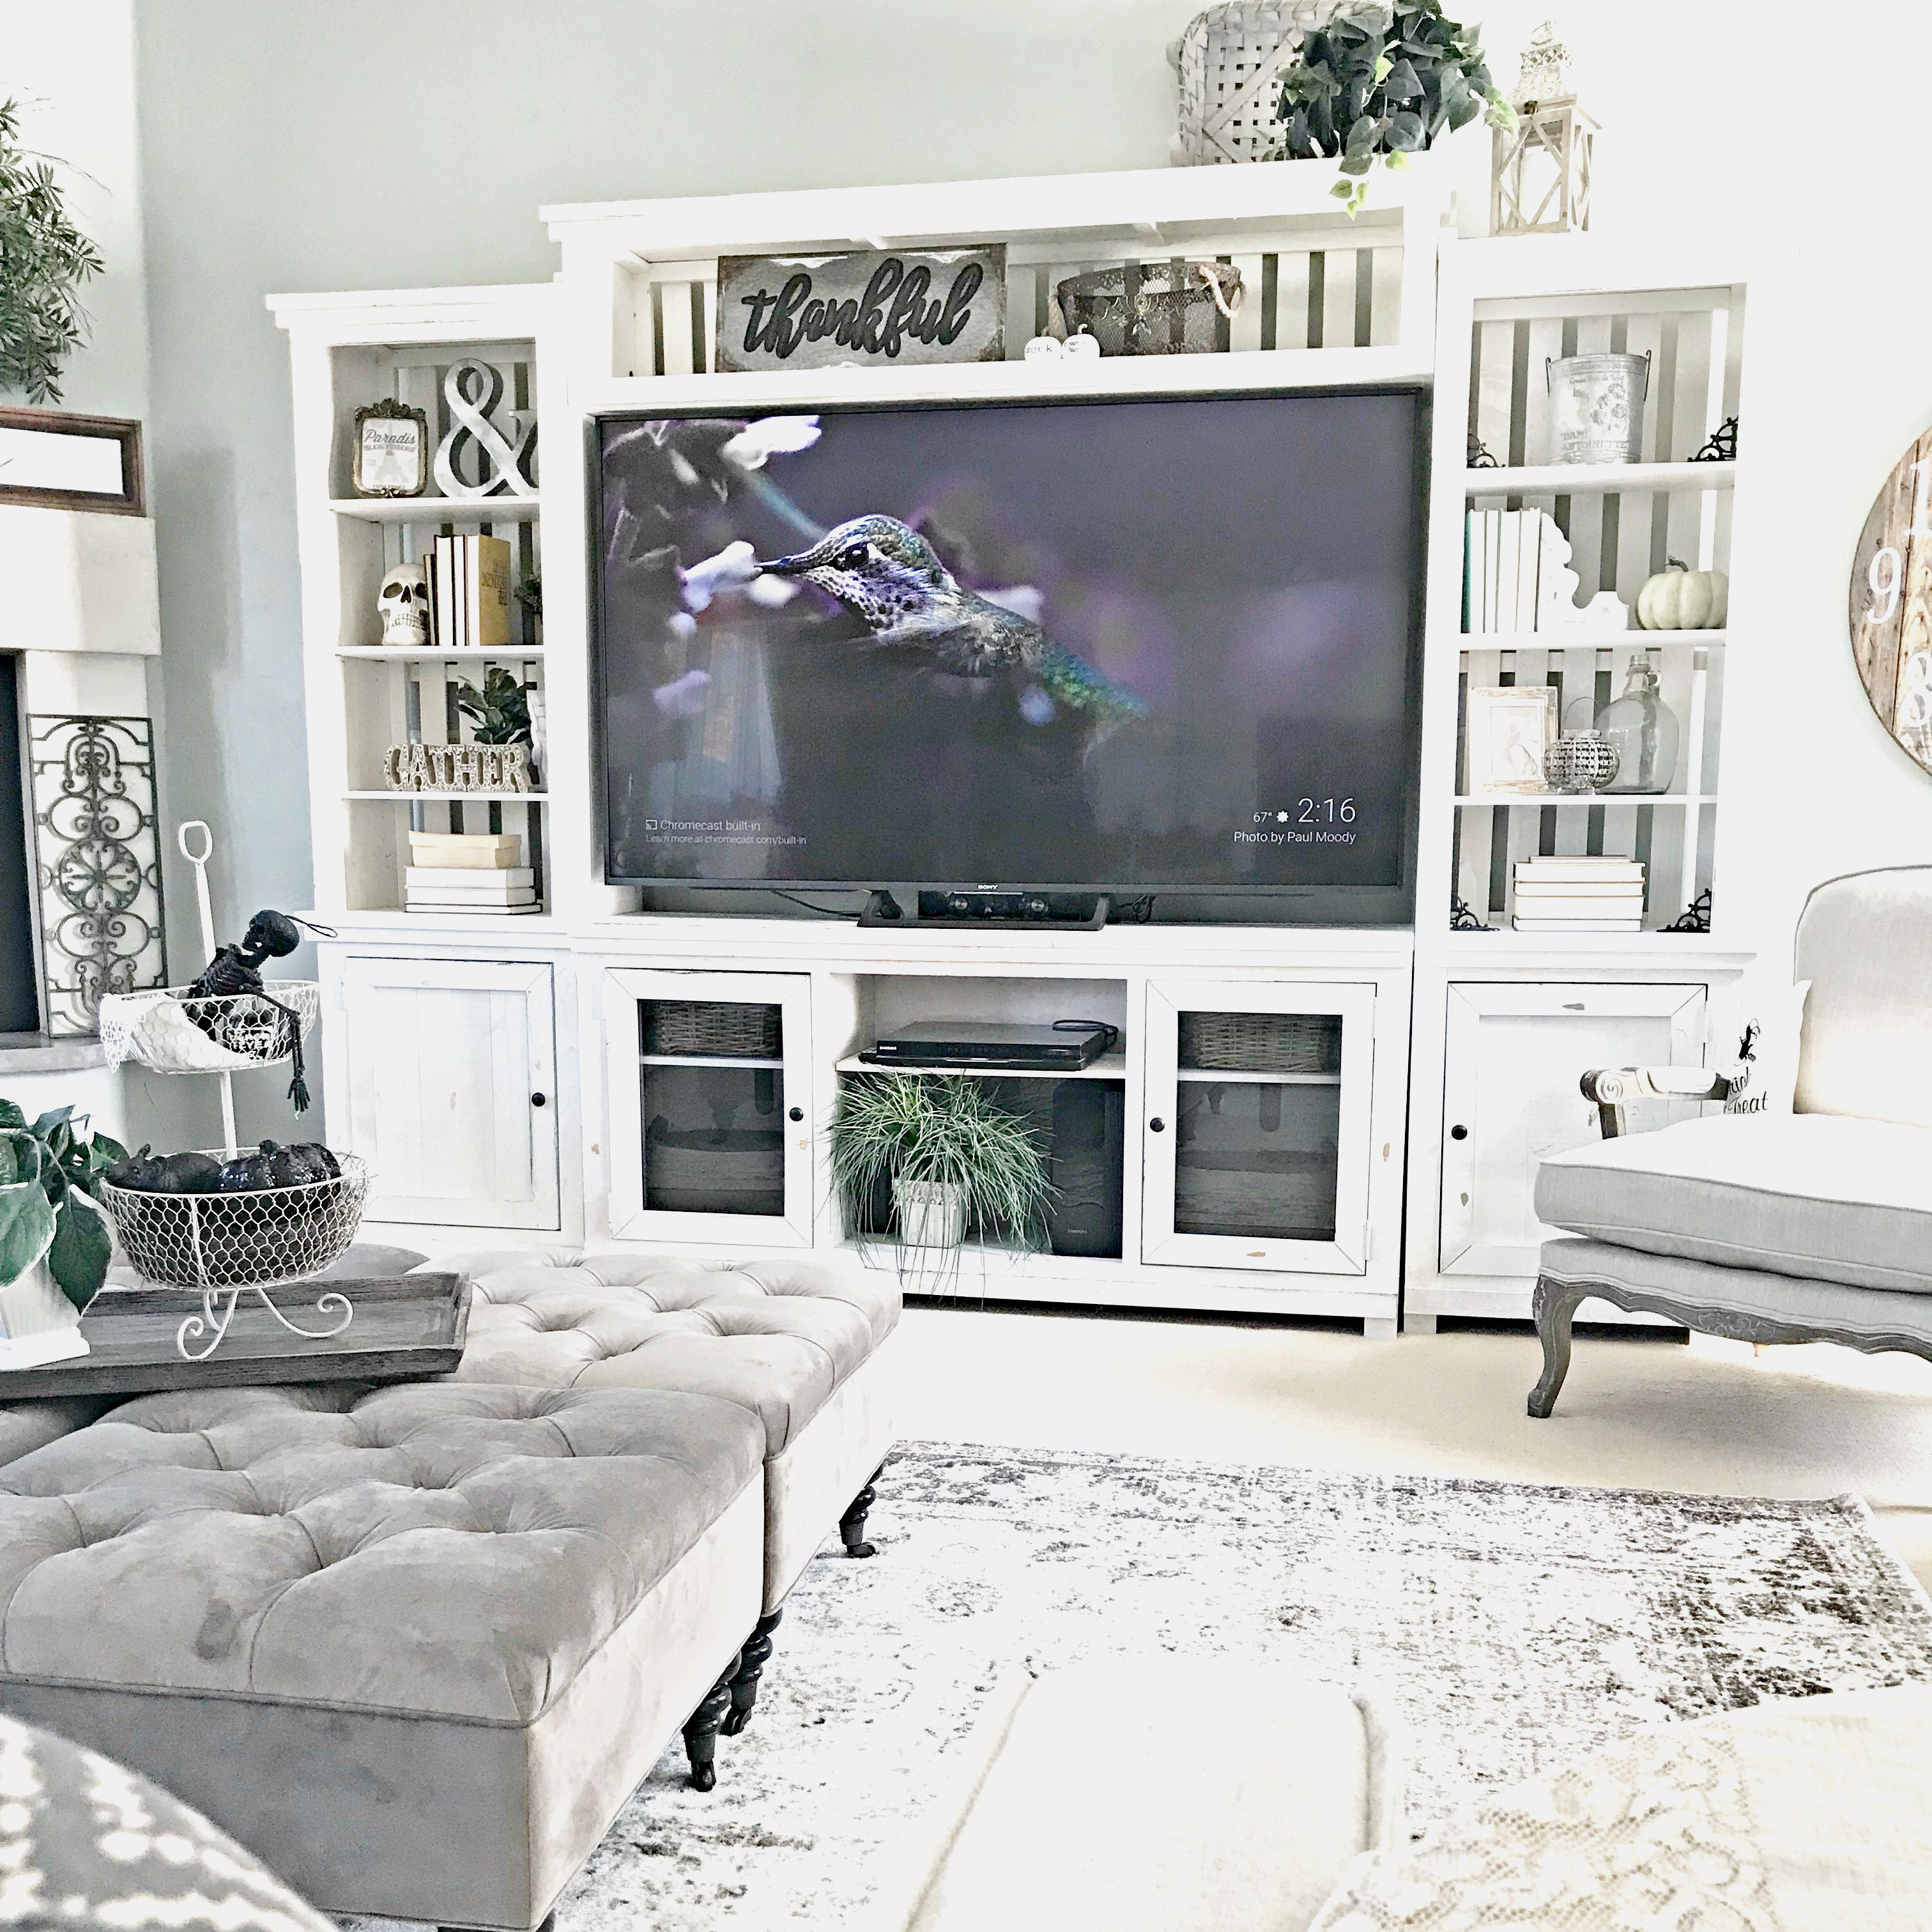 Farmhouse Entertainment Center from That's What I Want